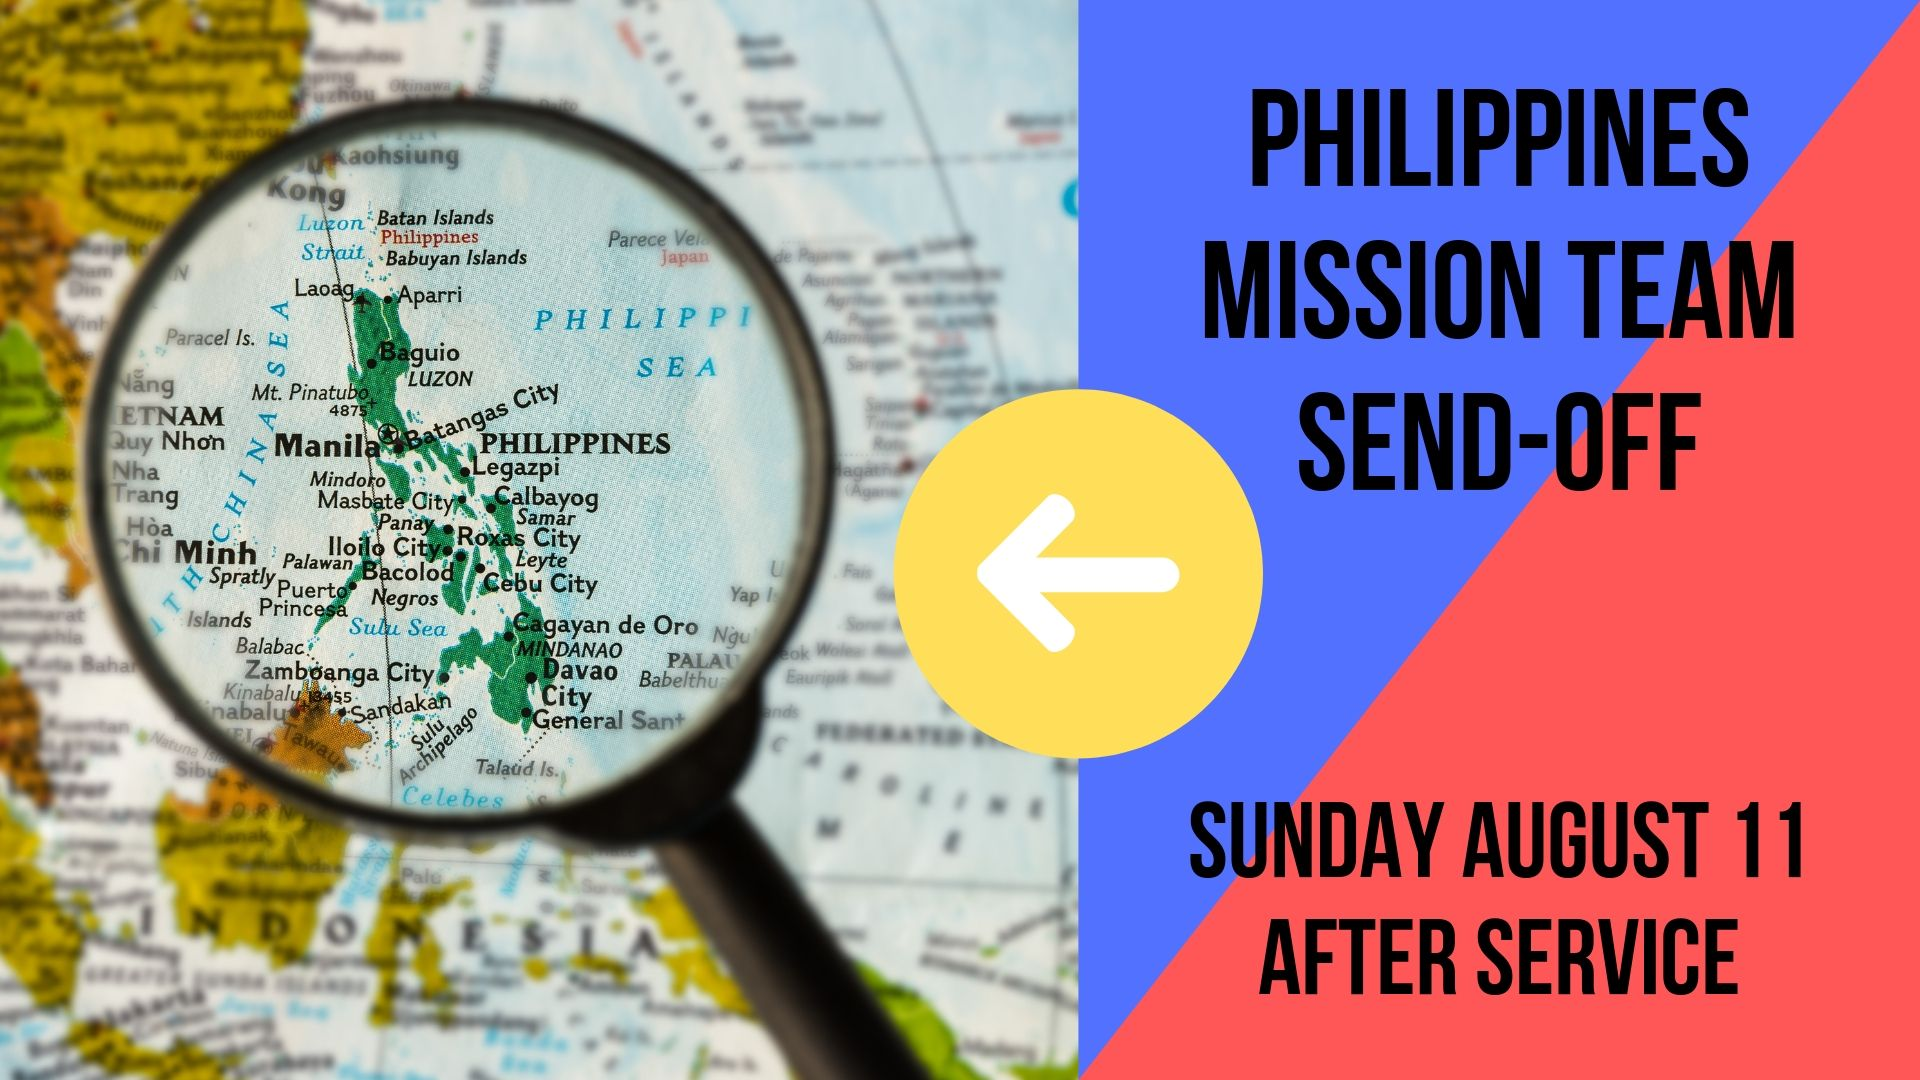 Philippines Mission Team Send-Off 2019.jpg